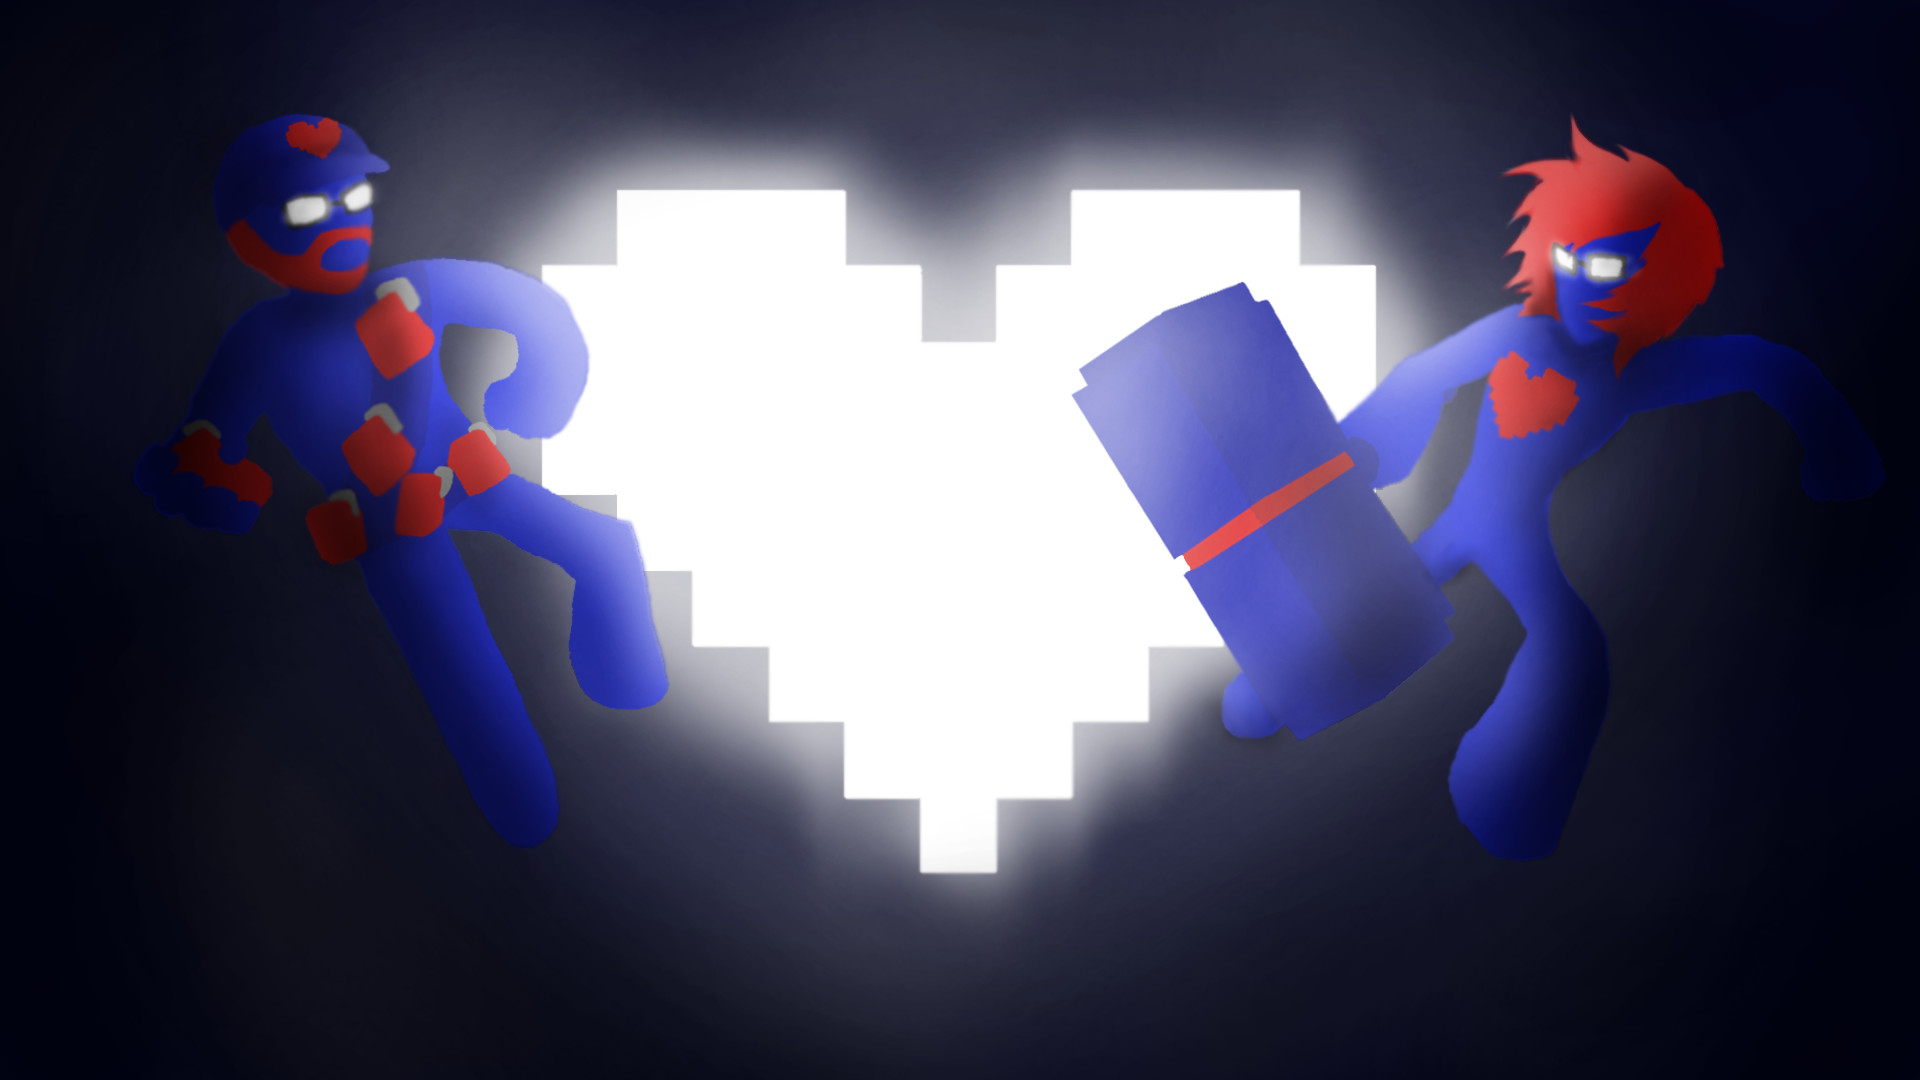 1920x1080 Pegboard Nerds Wallpaper + Wallpaper Requests to KellyMB : Monstercat